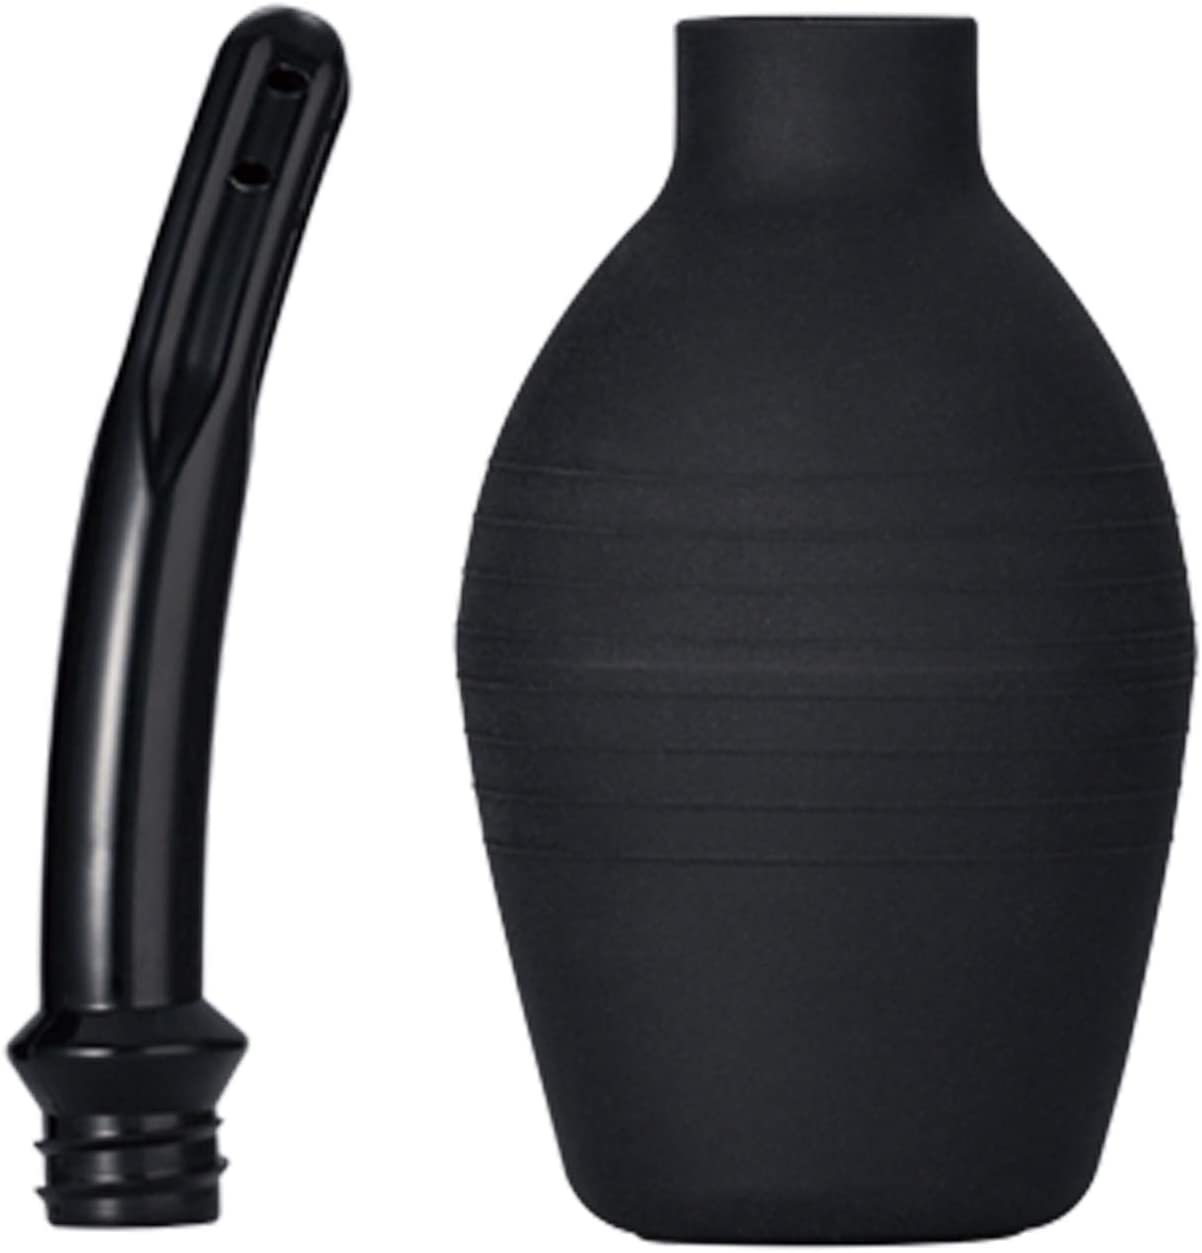 TopQuaFocus Enema online shop NEW before selling ☆ Bulb Anal Women' Douche for Cleaner